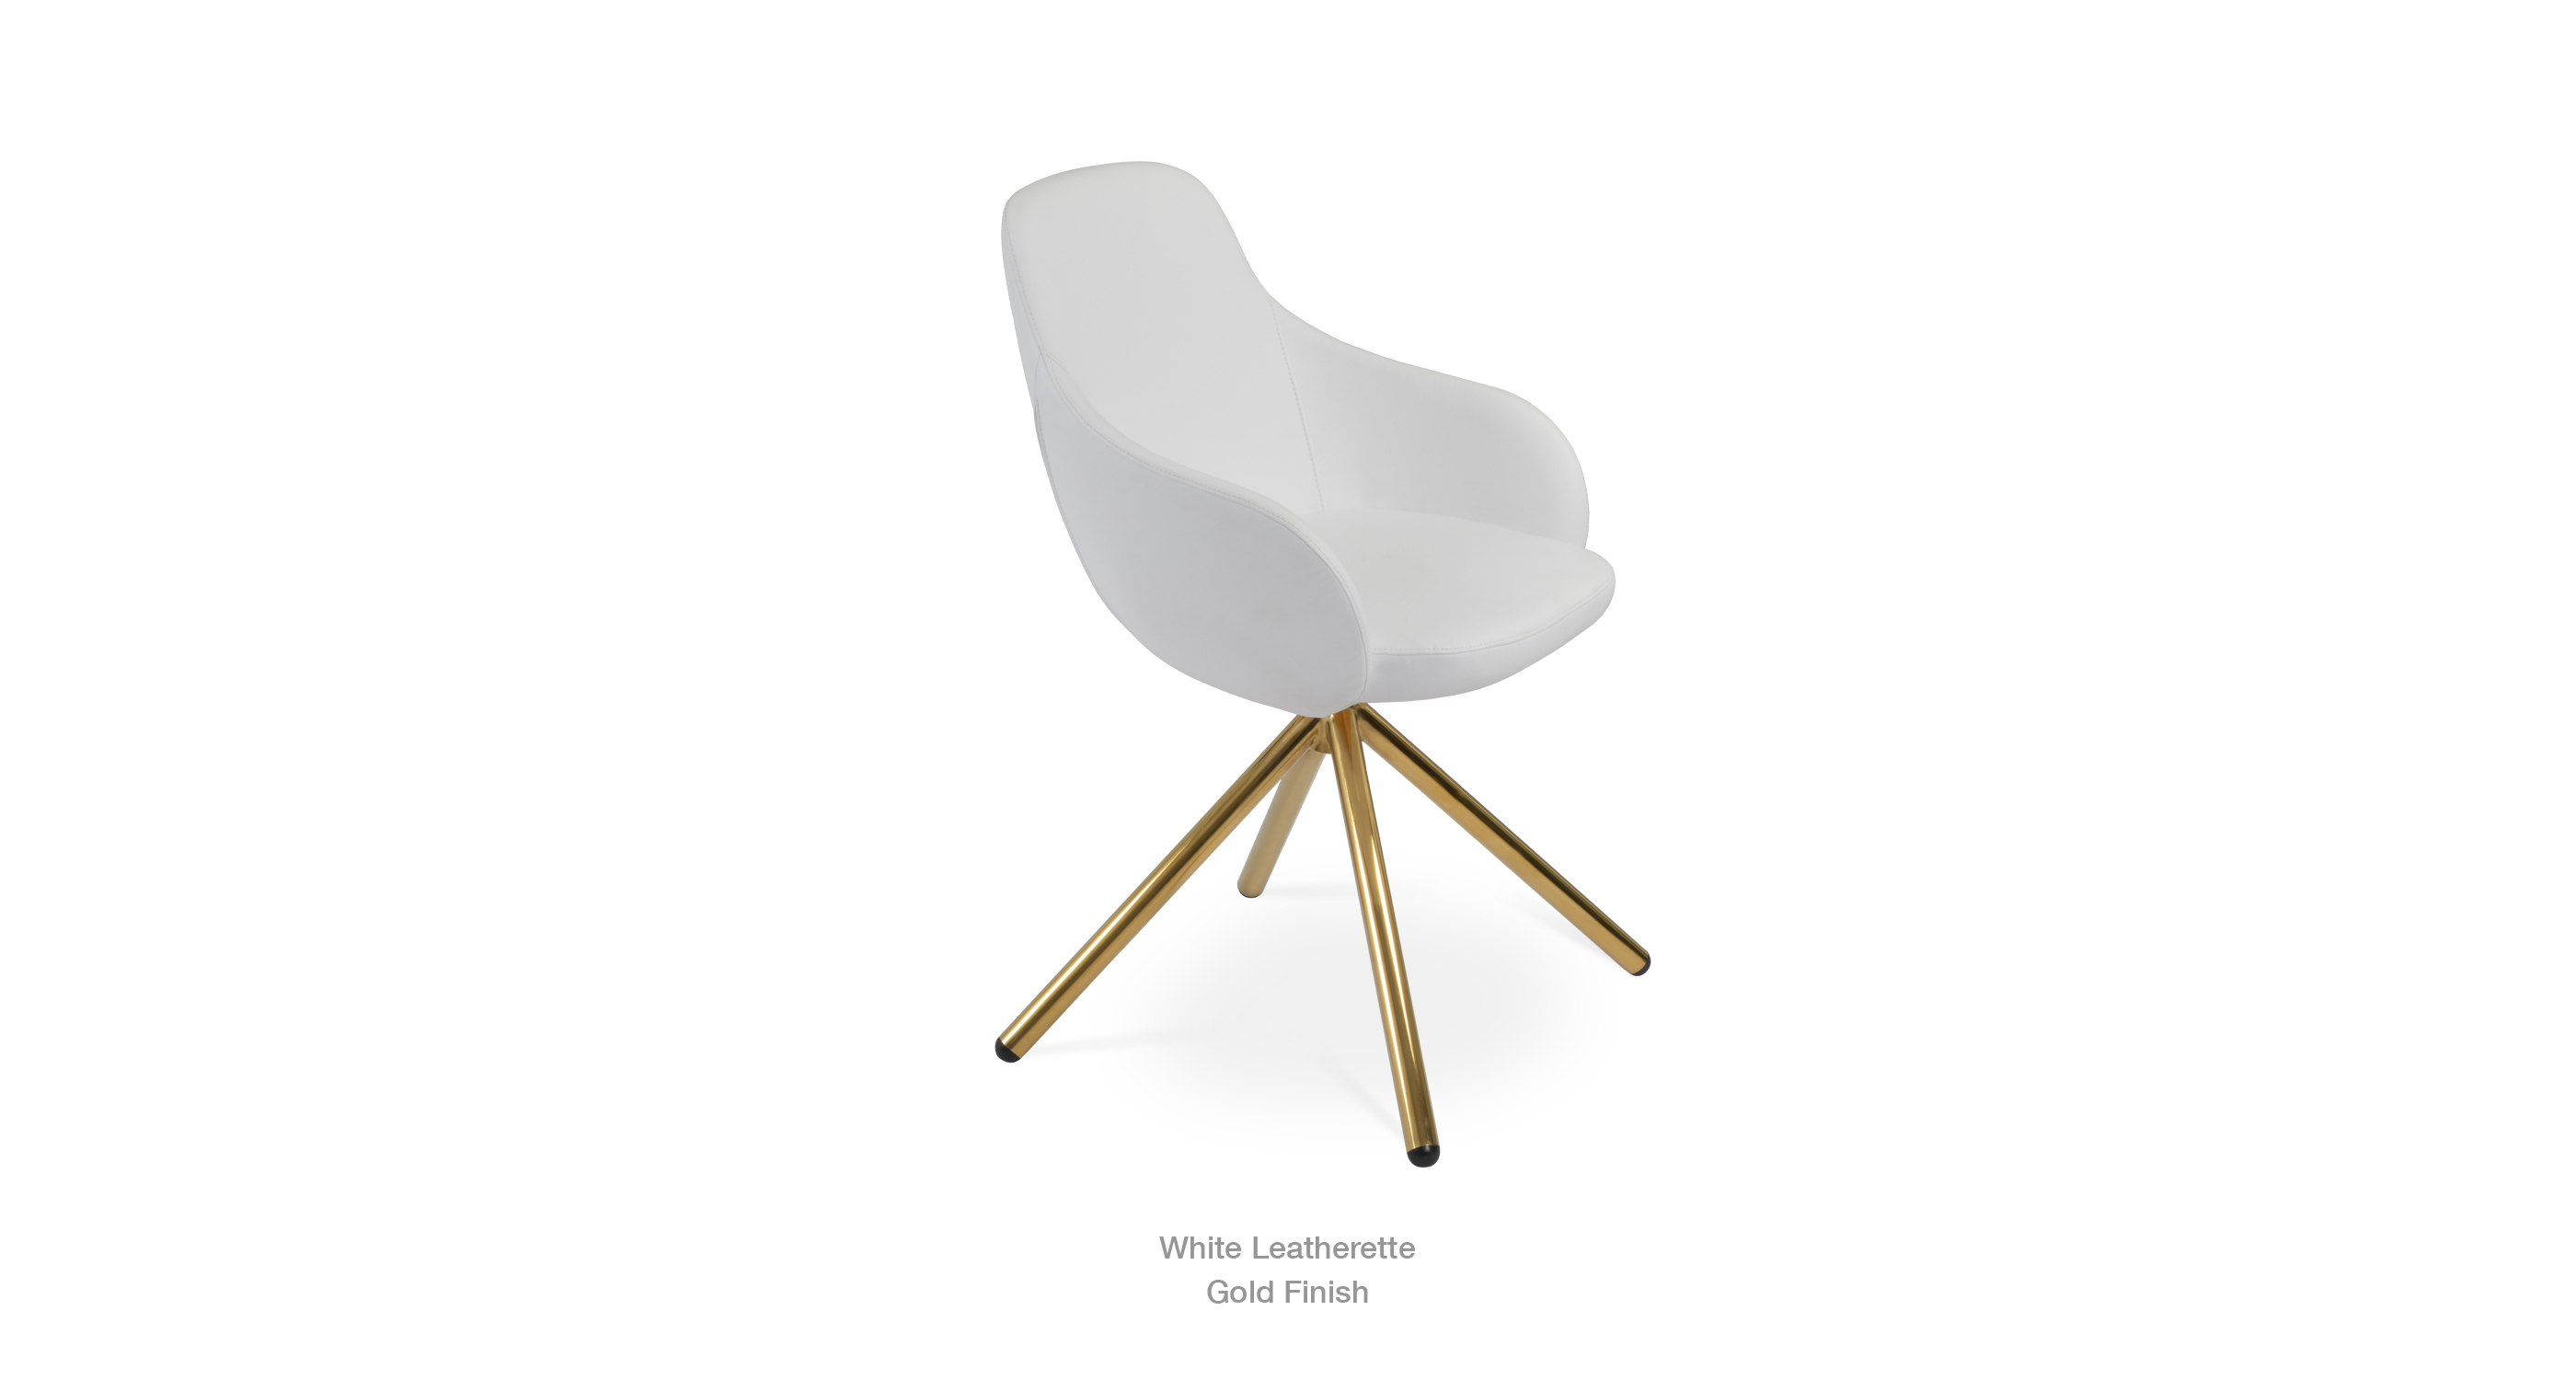 white leathertte - gold